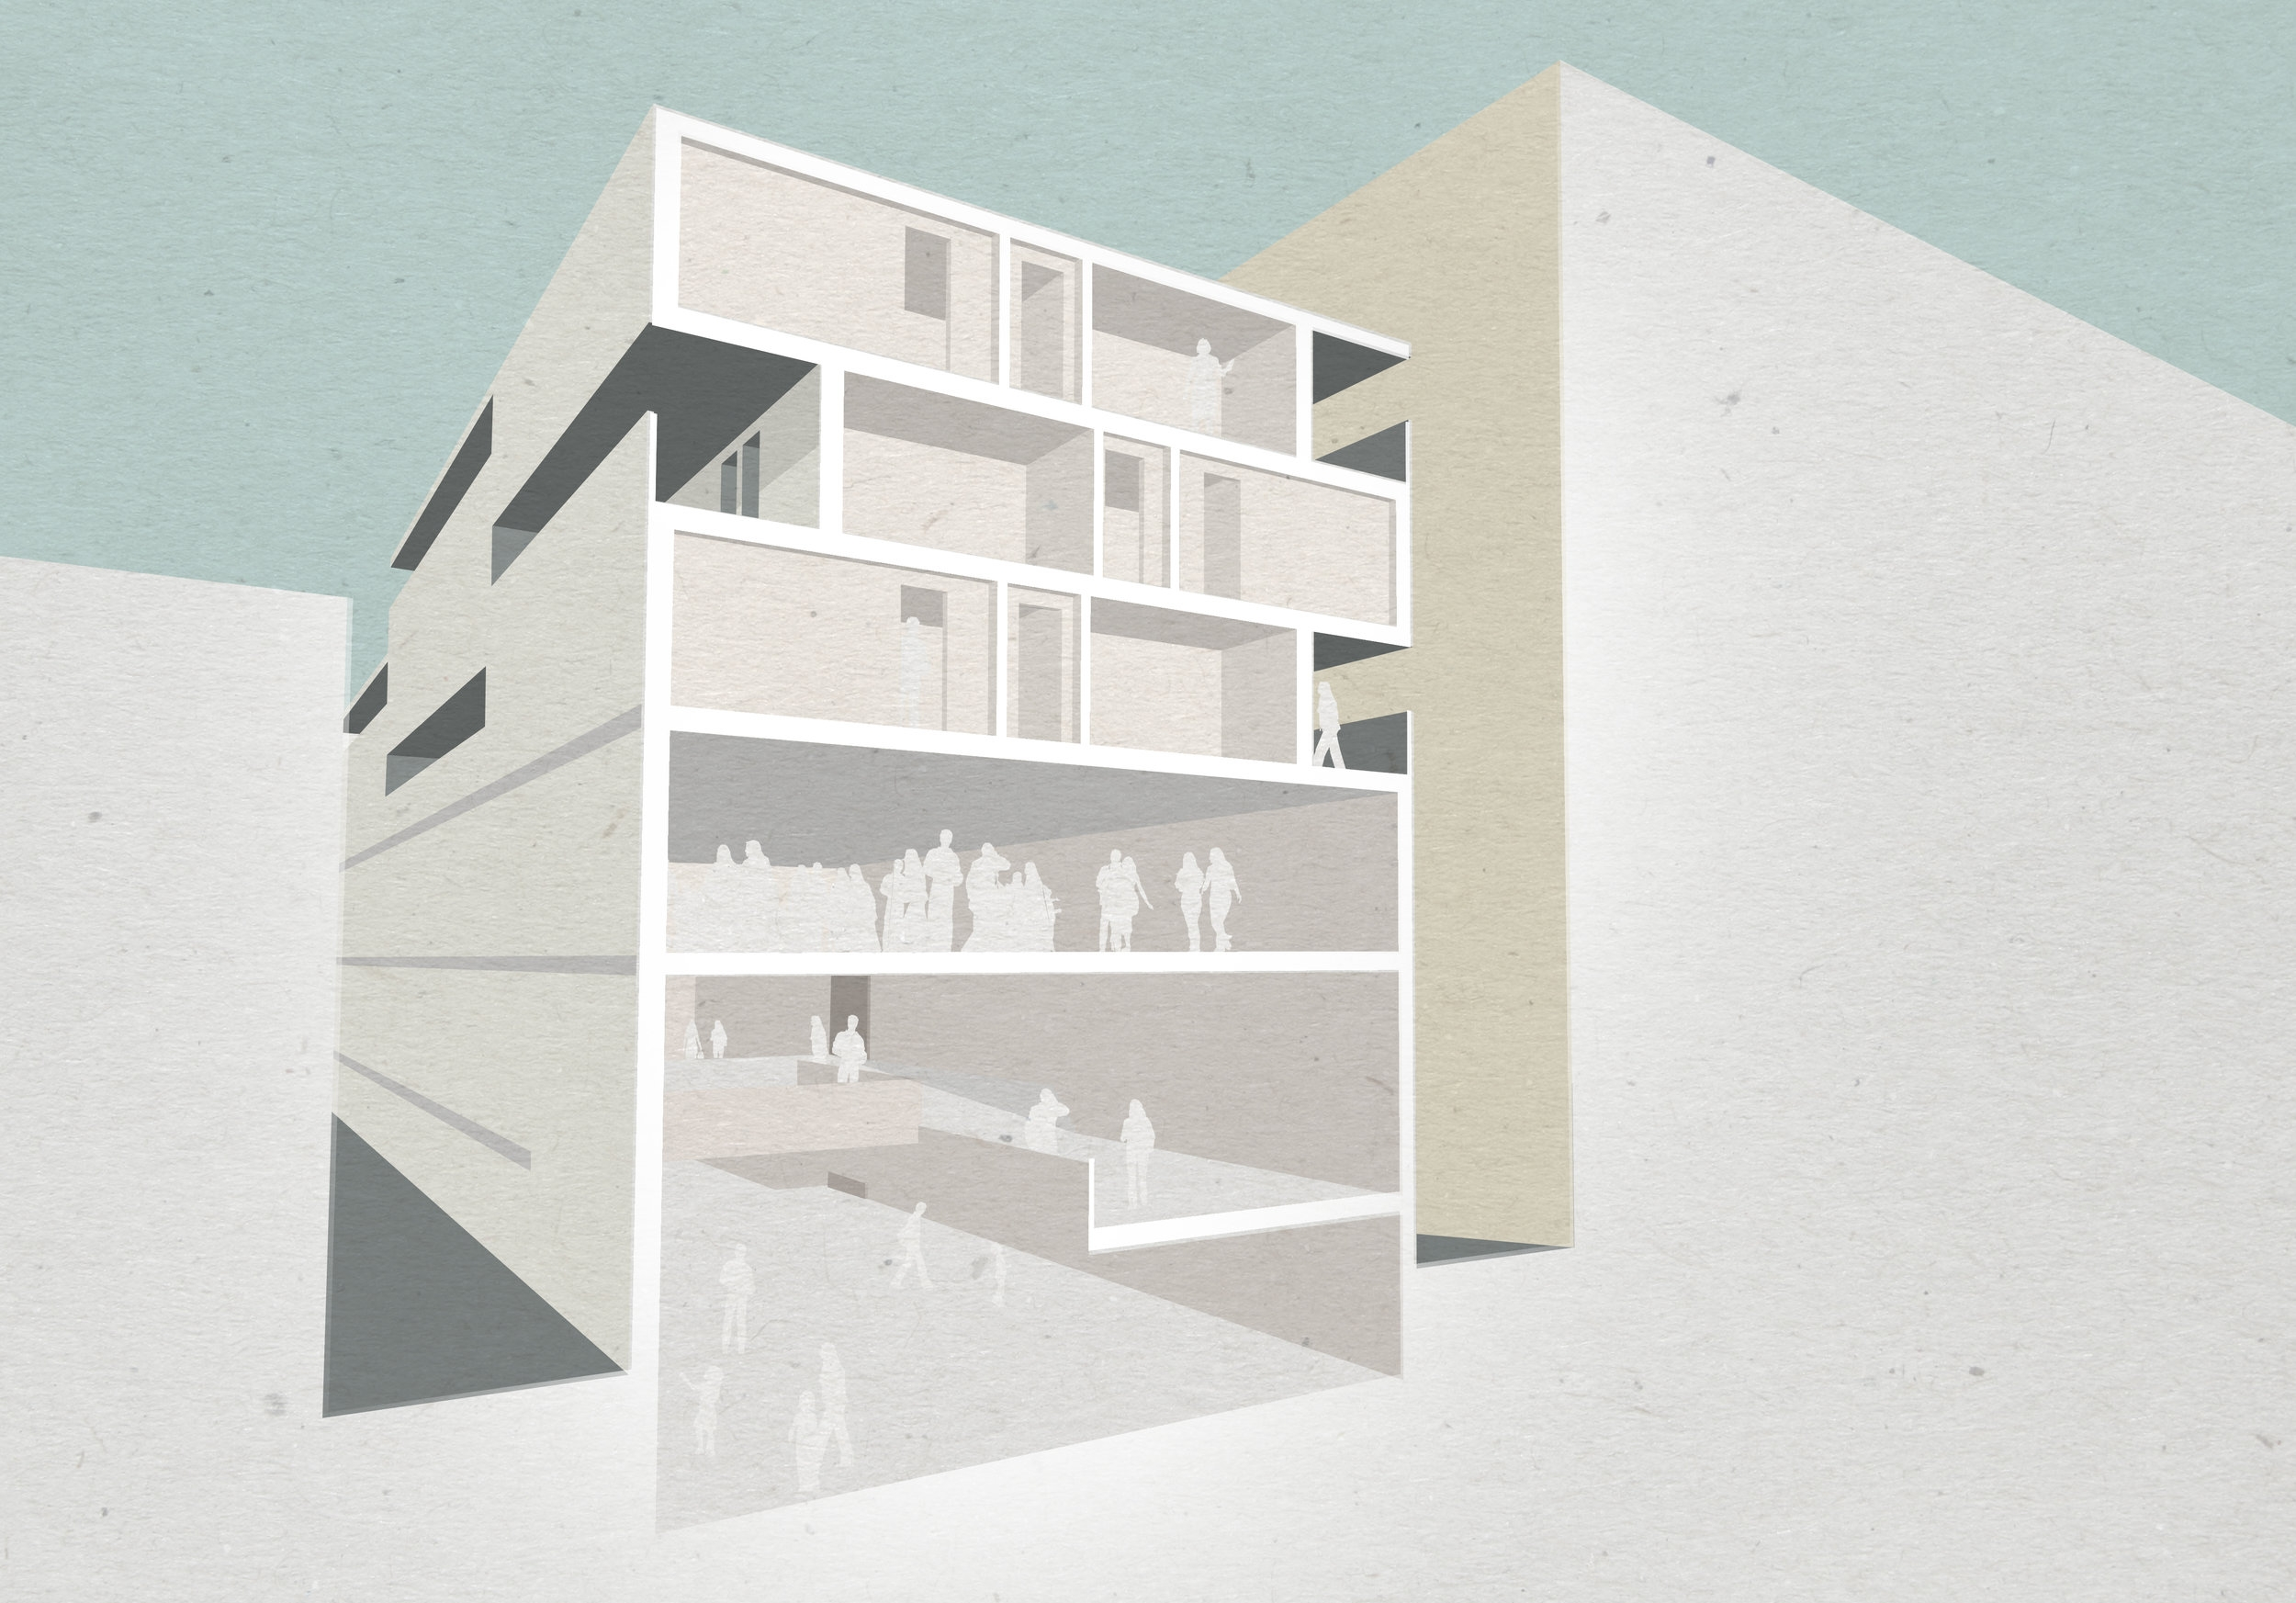 Bolter Design interior architecture for Symes Mews, Camden